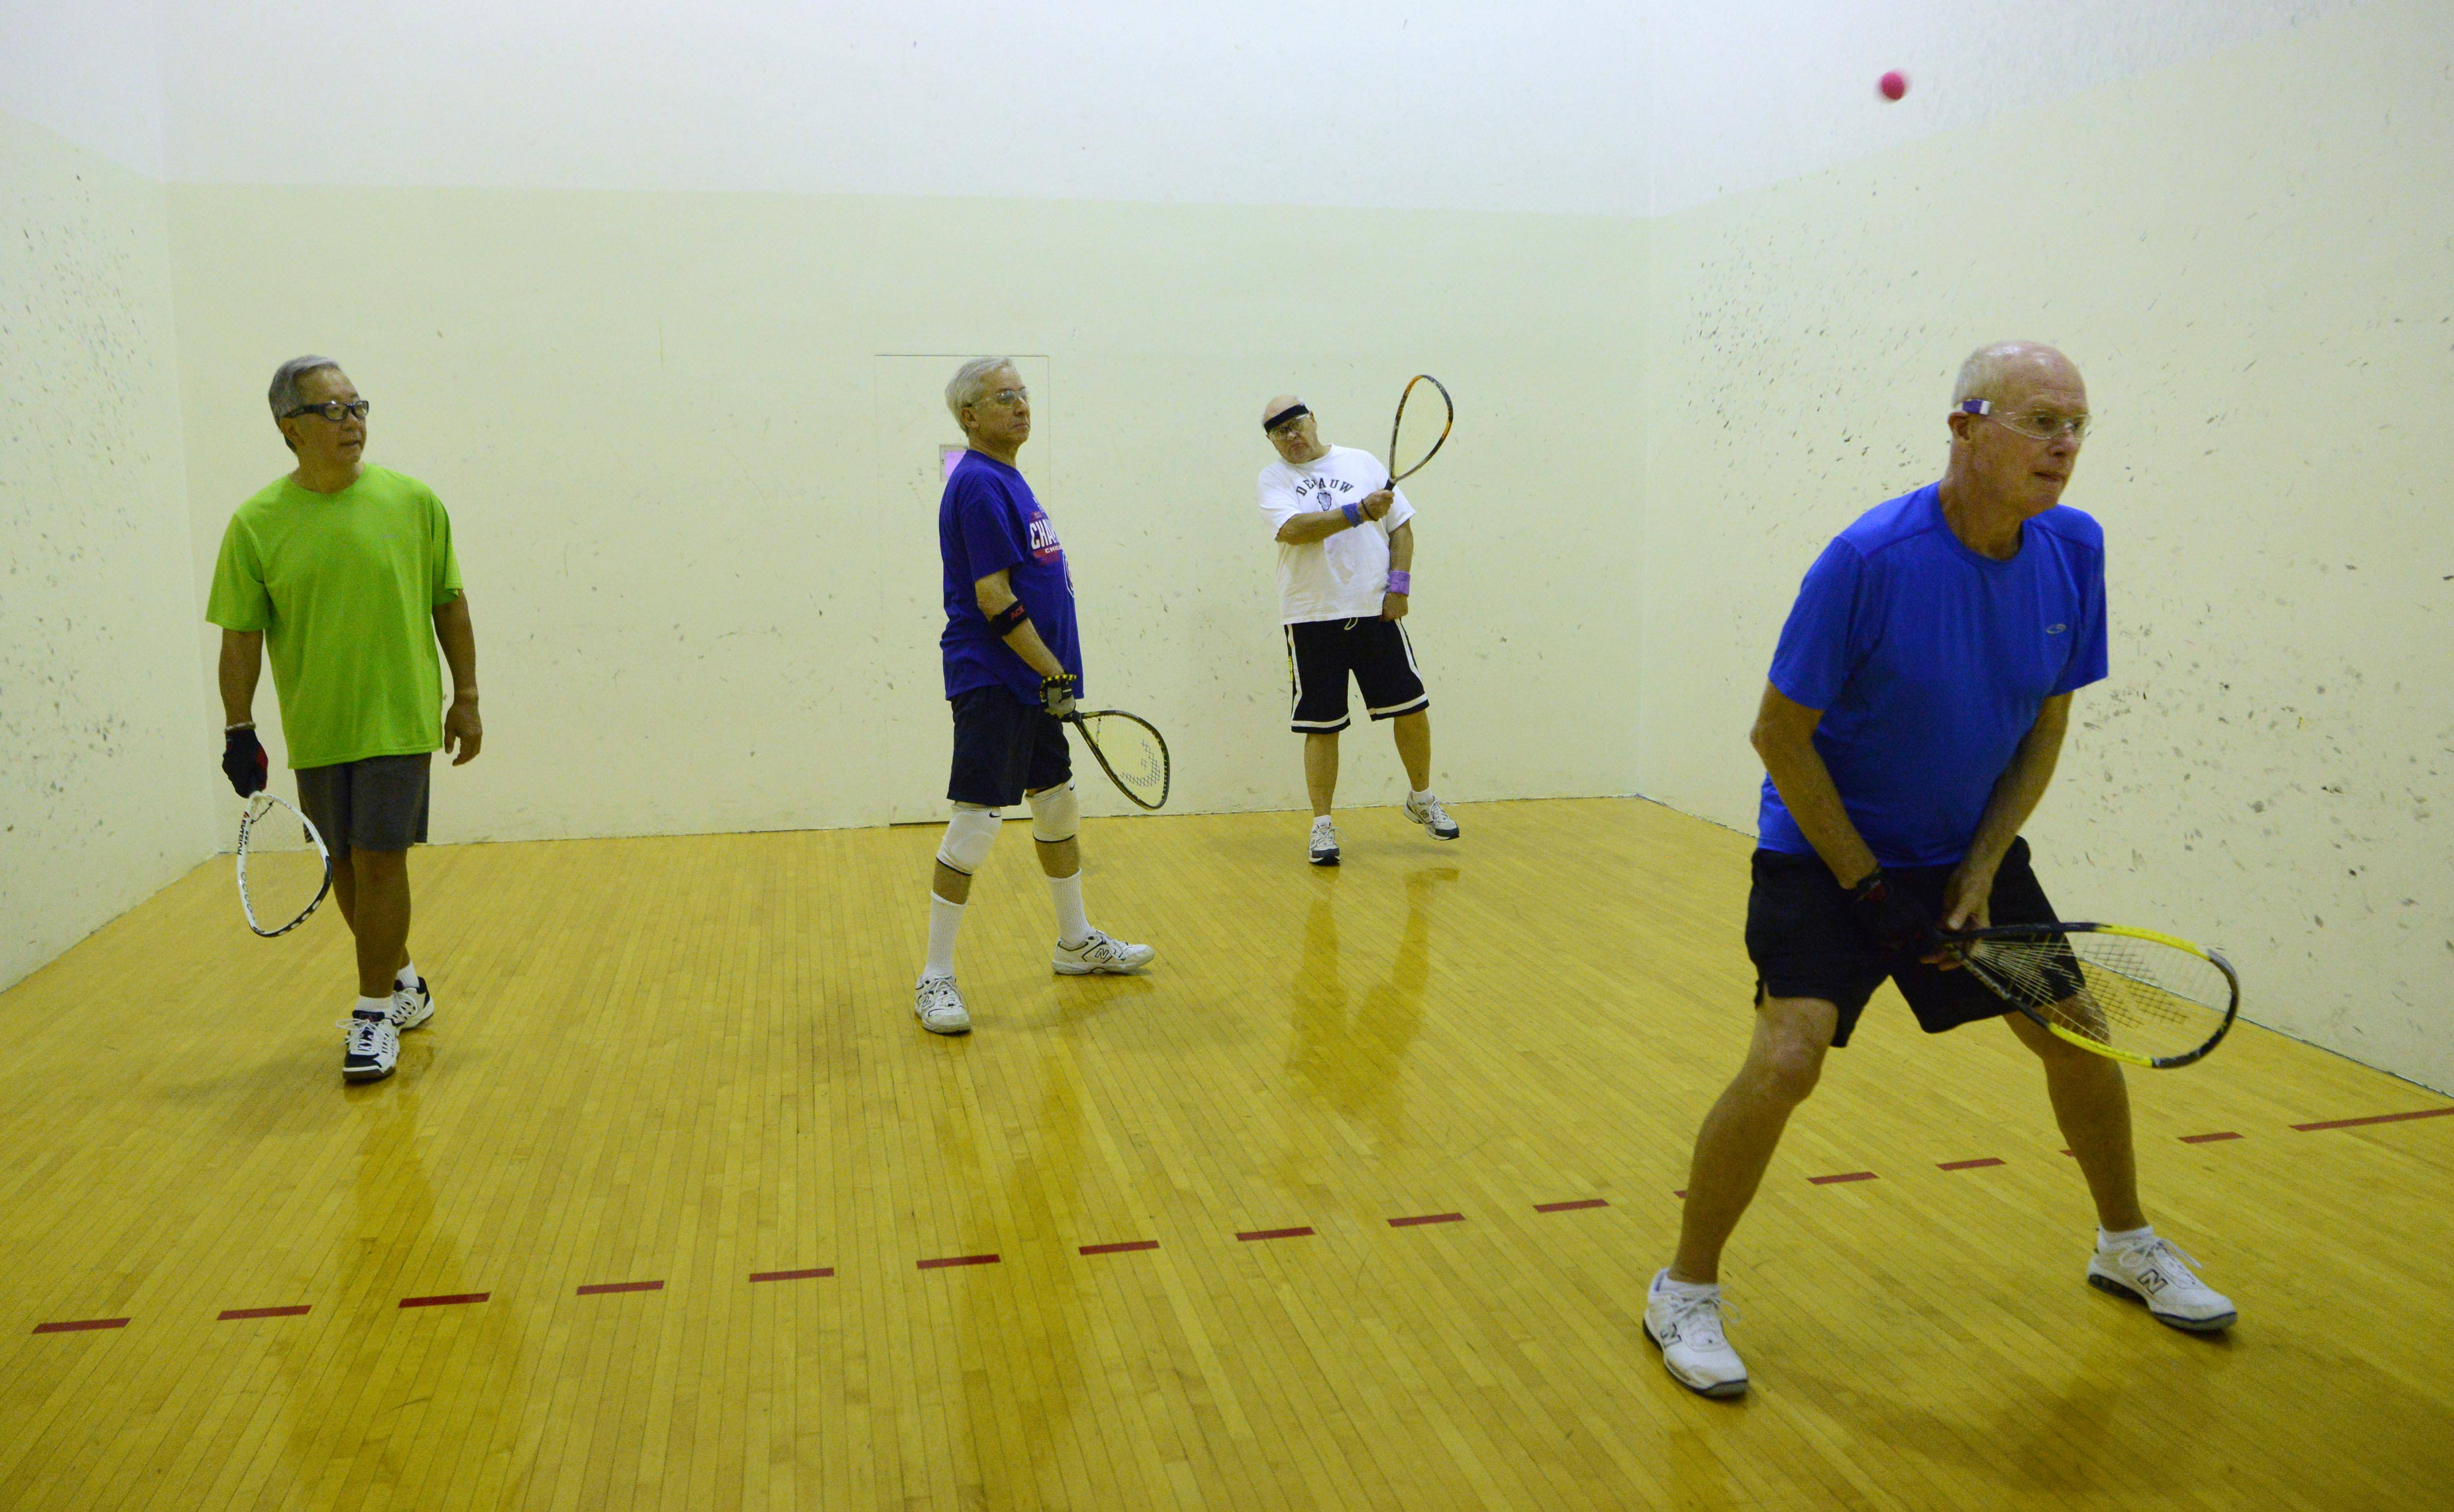 From left, George Shibayana of Arlington Heights, Rich Tepperman of Schaumburg, Len Hochmuth of Mount Prospect and Steve Pierce of South Barrington play racquetball at the Forest View Racquet and Fitness Club in Arlington Heights.